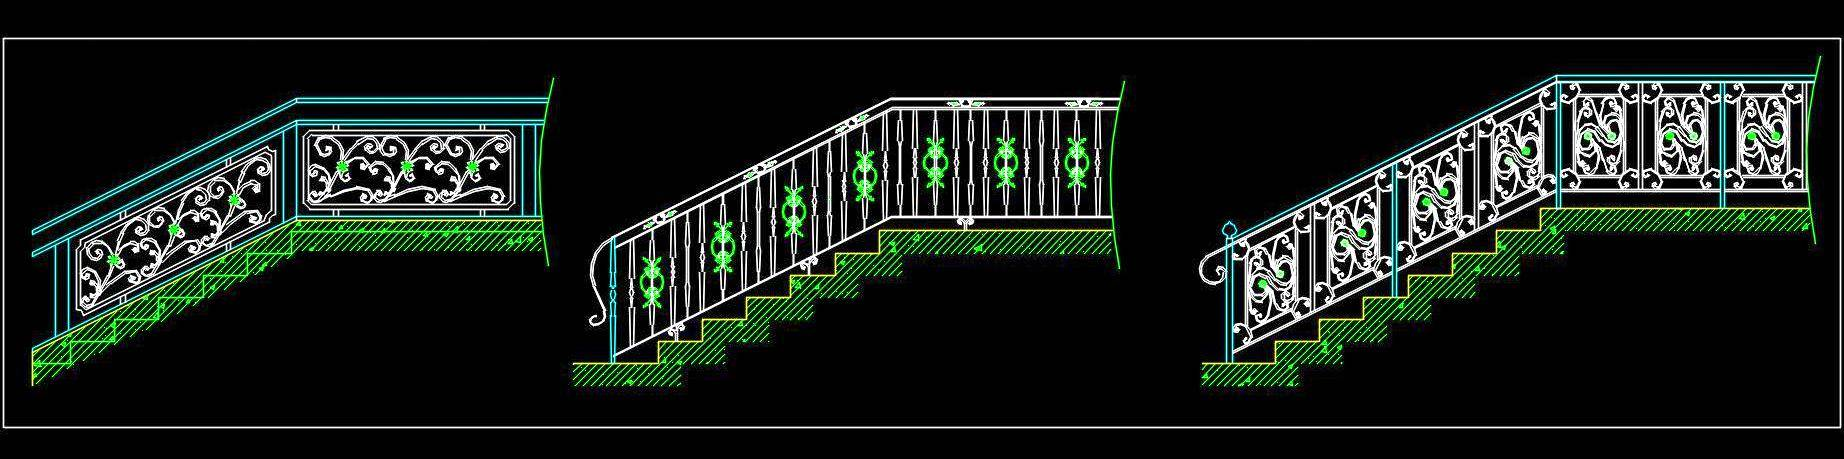 Wrought Iron Railing Cad Block DWG File